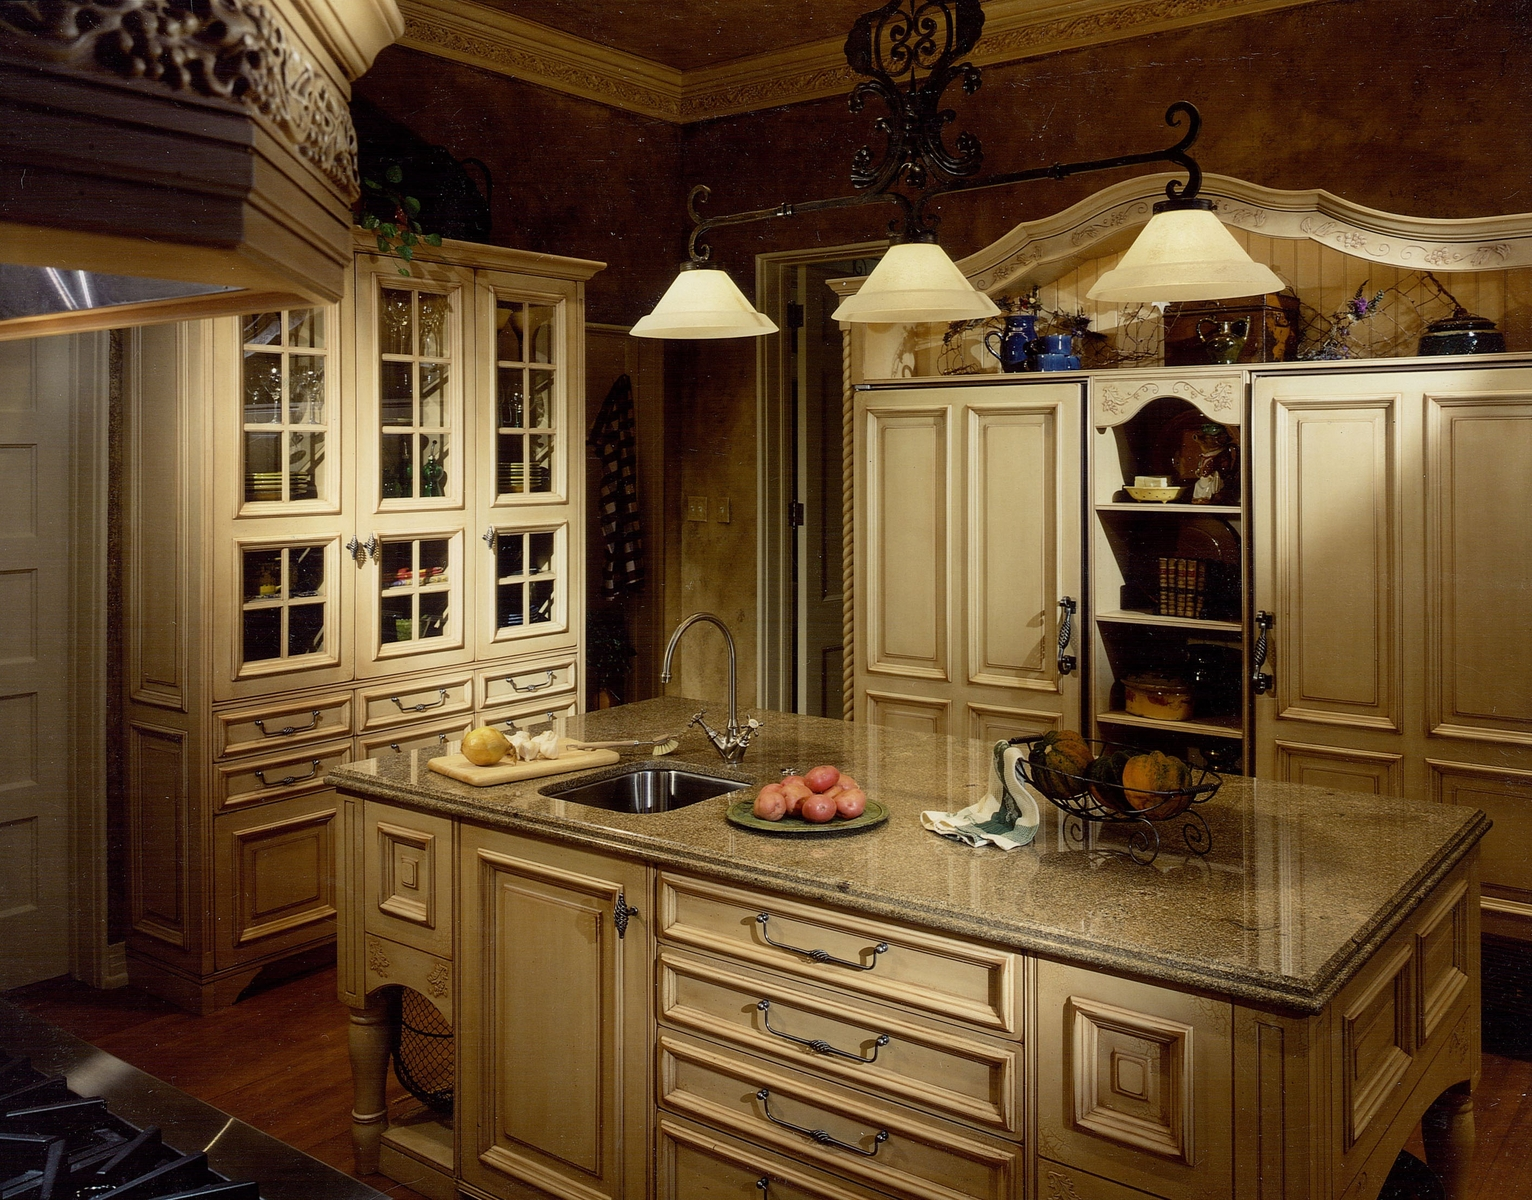 English country kitchen pictures Country Kitchen Pictures Ideal Home